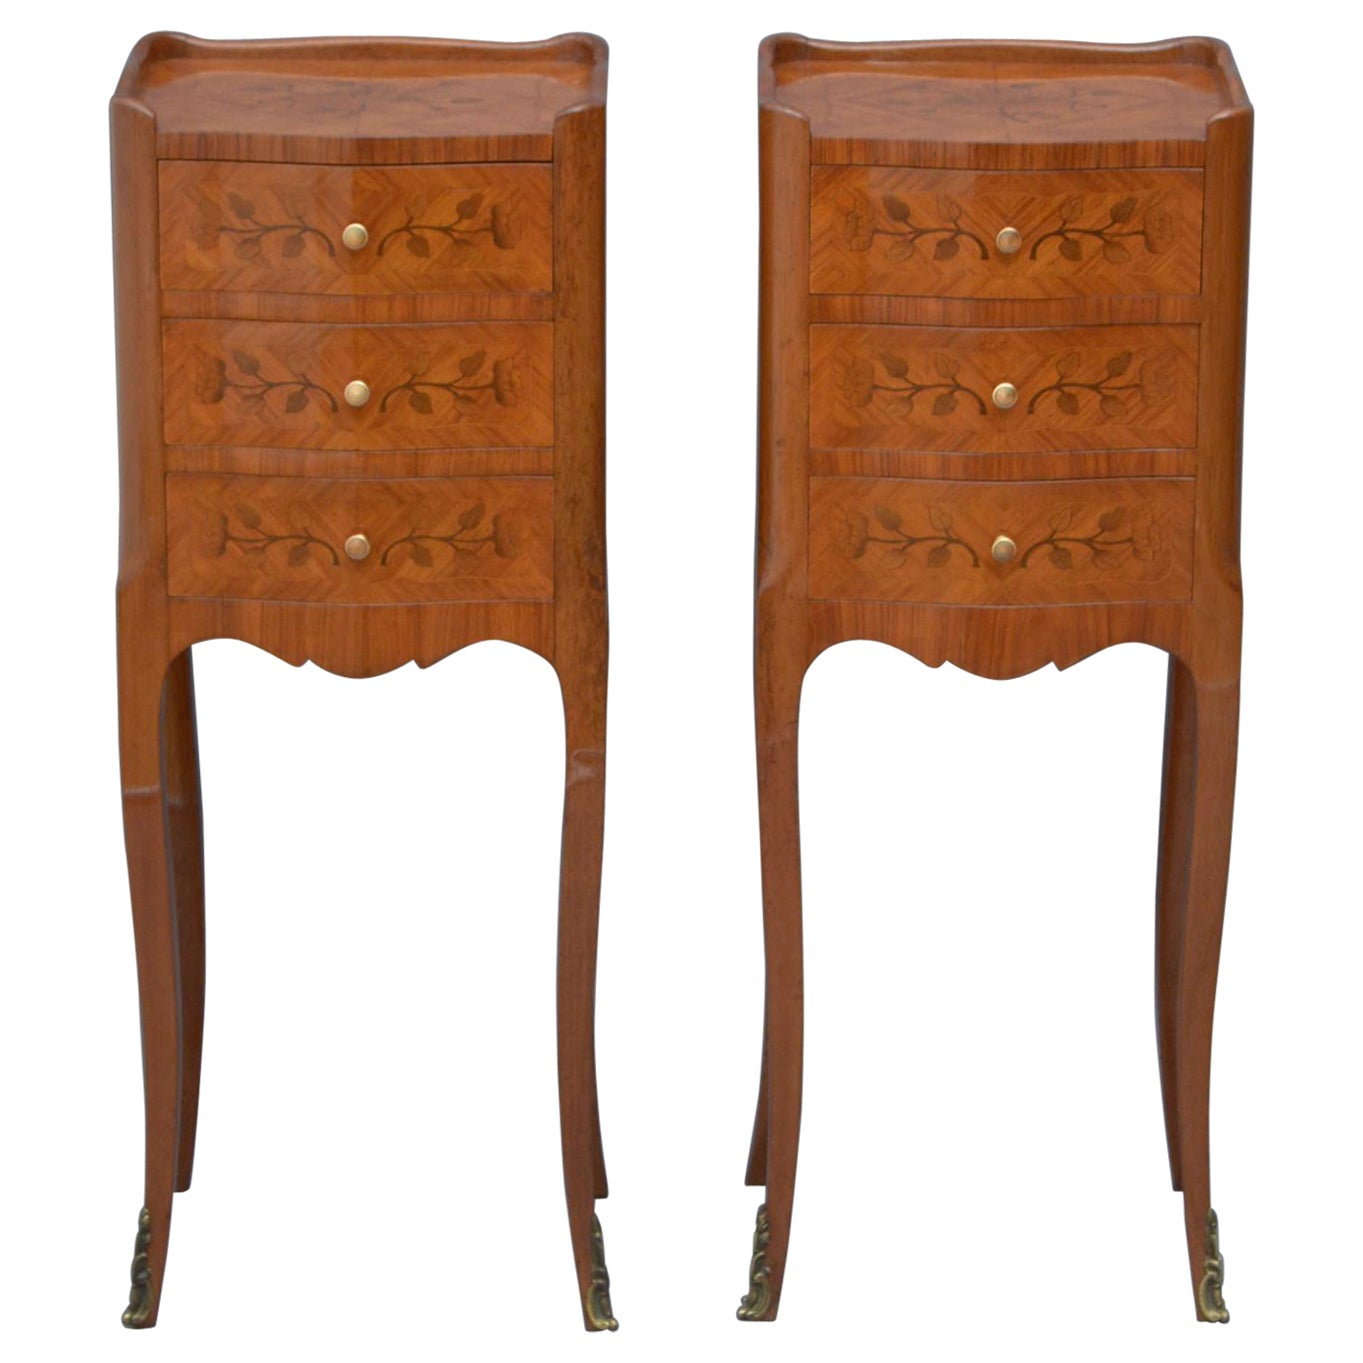 Pair of Bedside Cabinets Chests